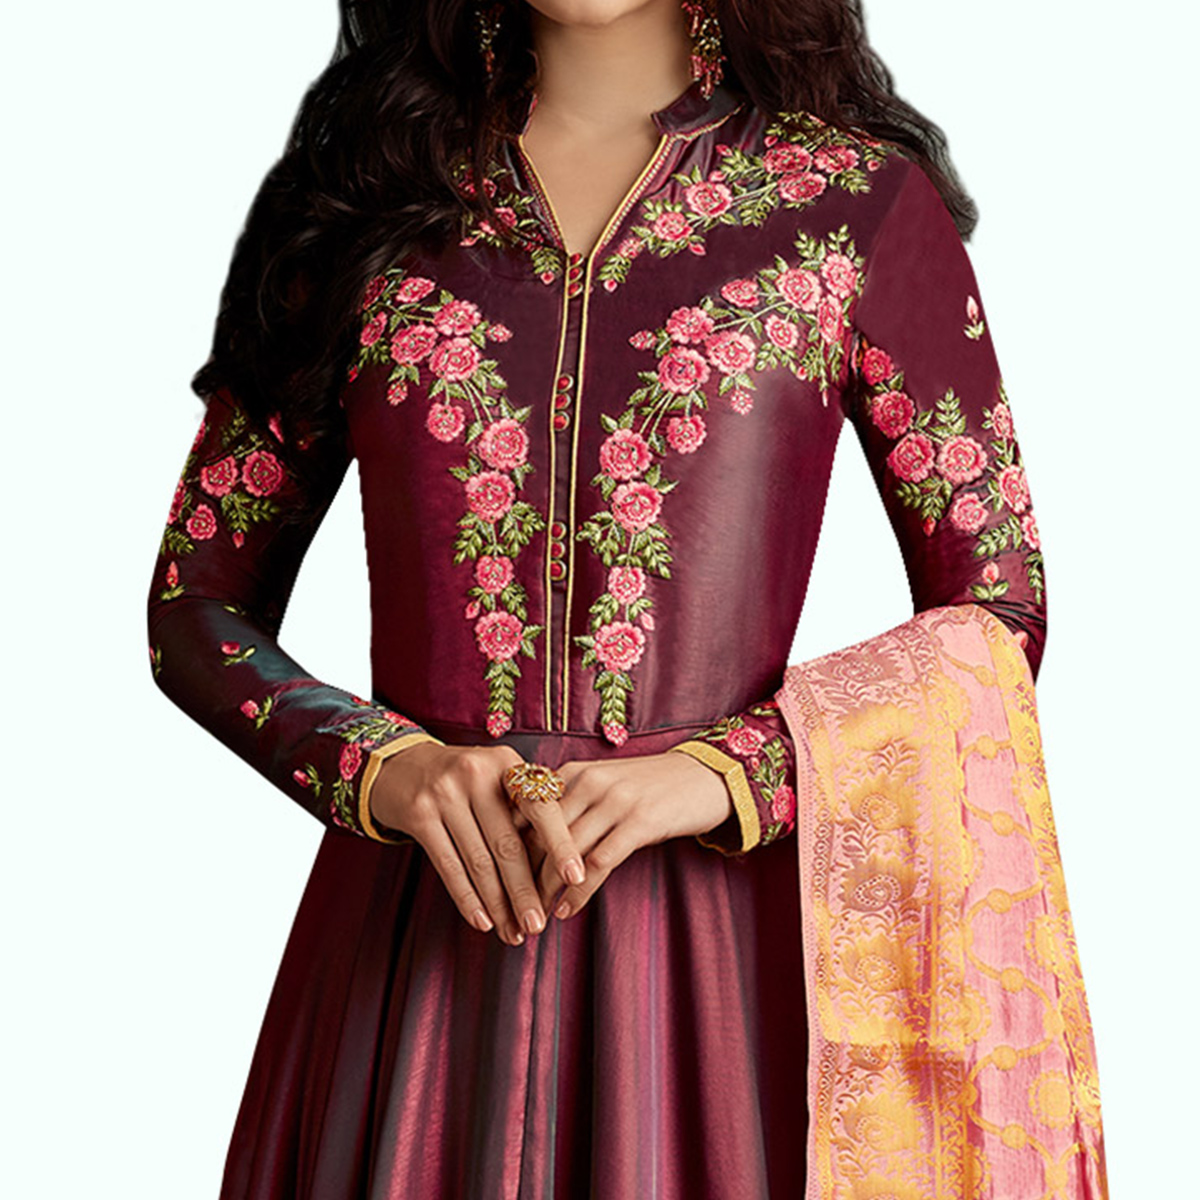 Marvellous Maroon Colored Partywear Embroidered Raw Silk Anarkali Suit